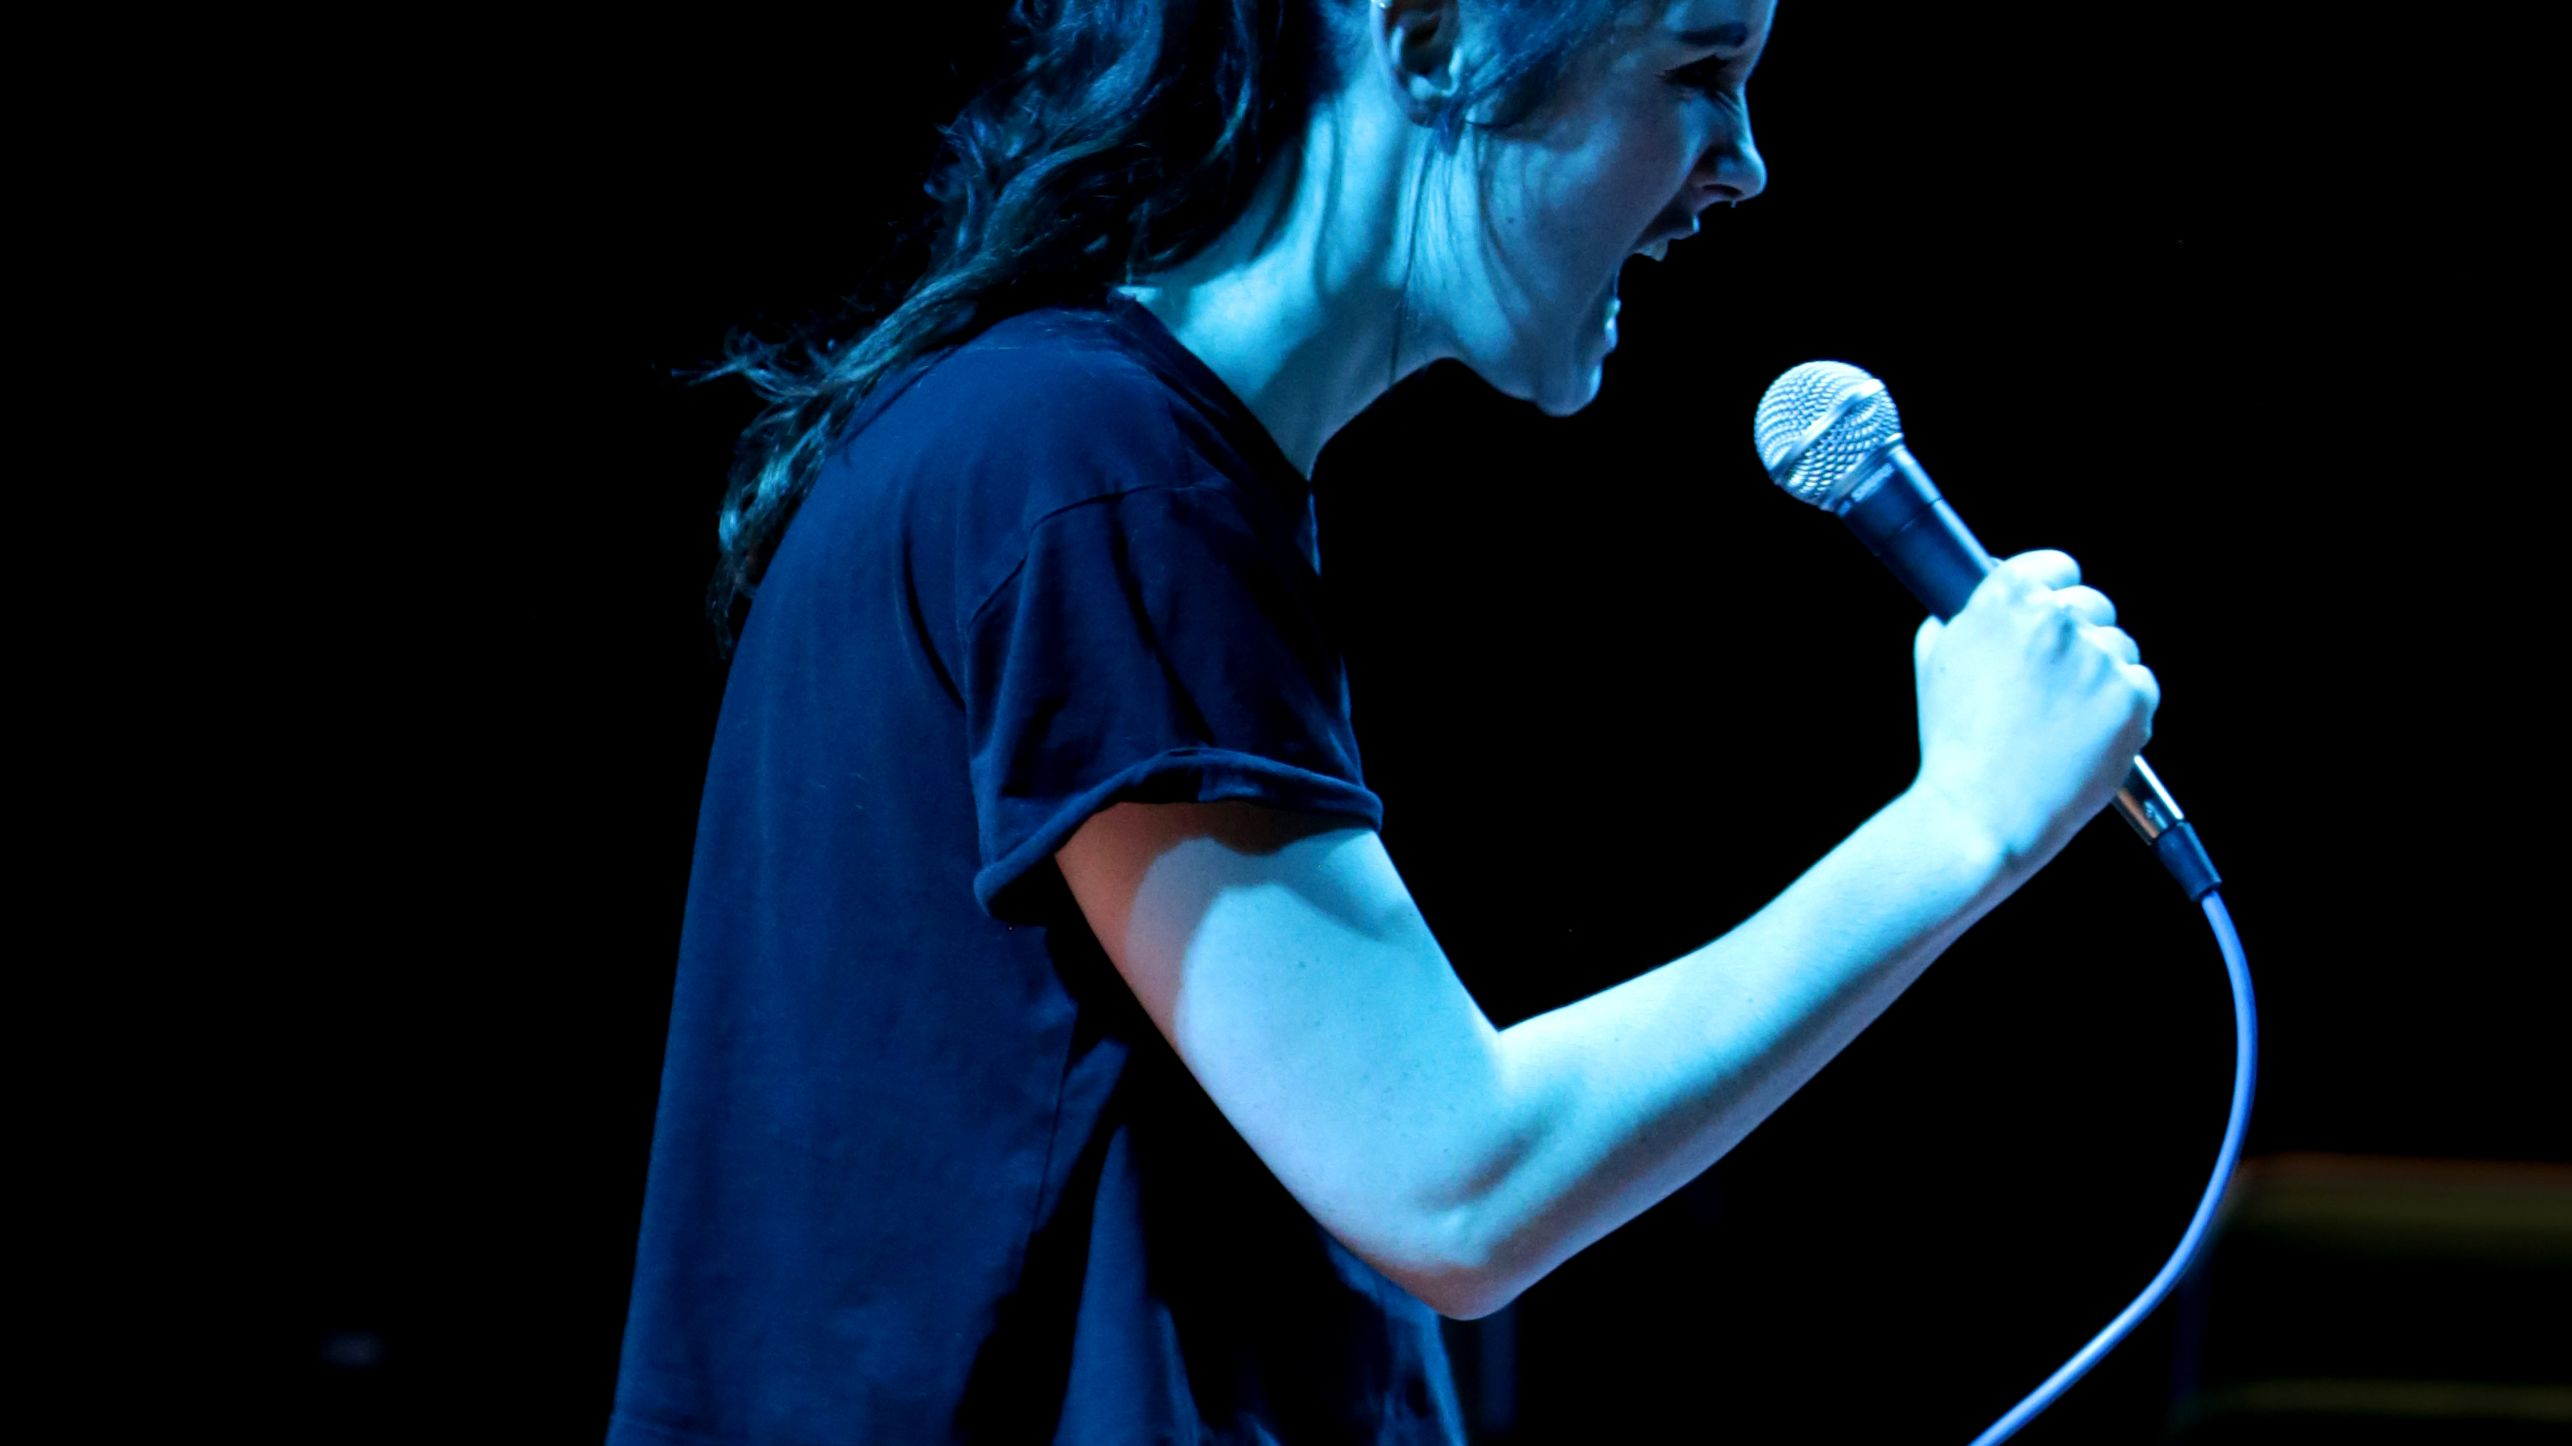 Girl in black t-shirt and jeans with a mic on stage.